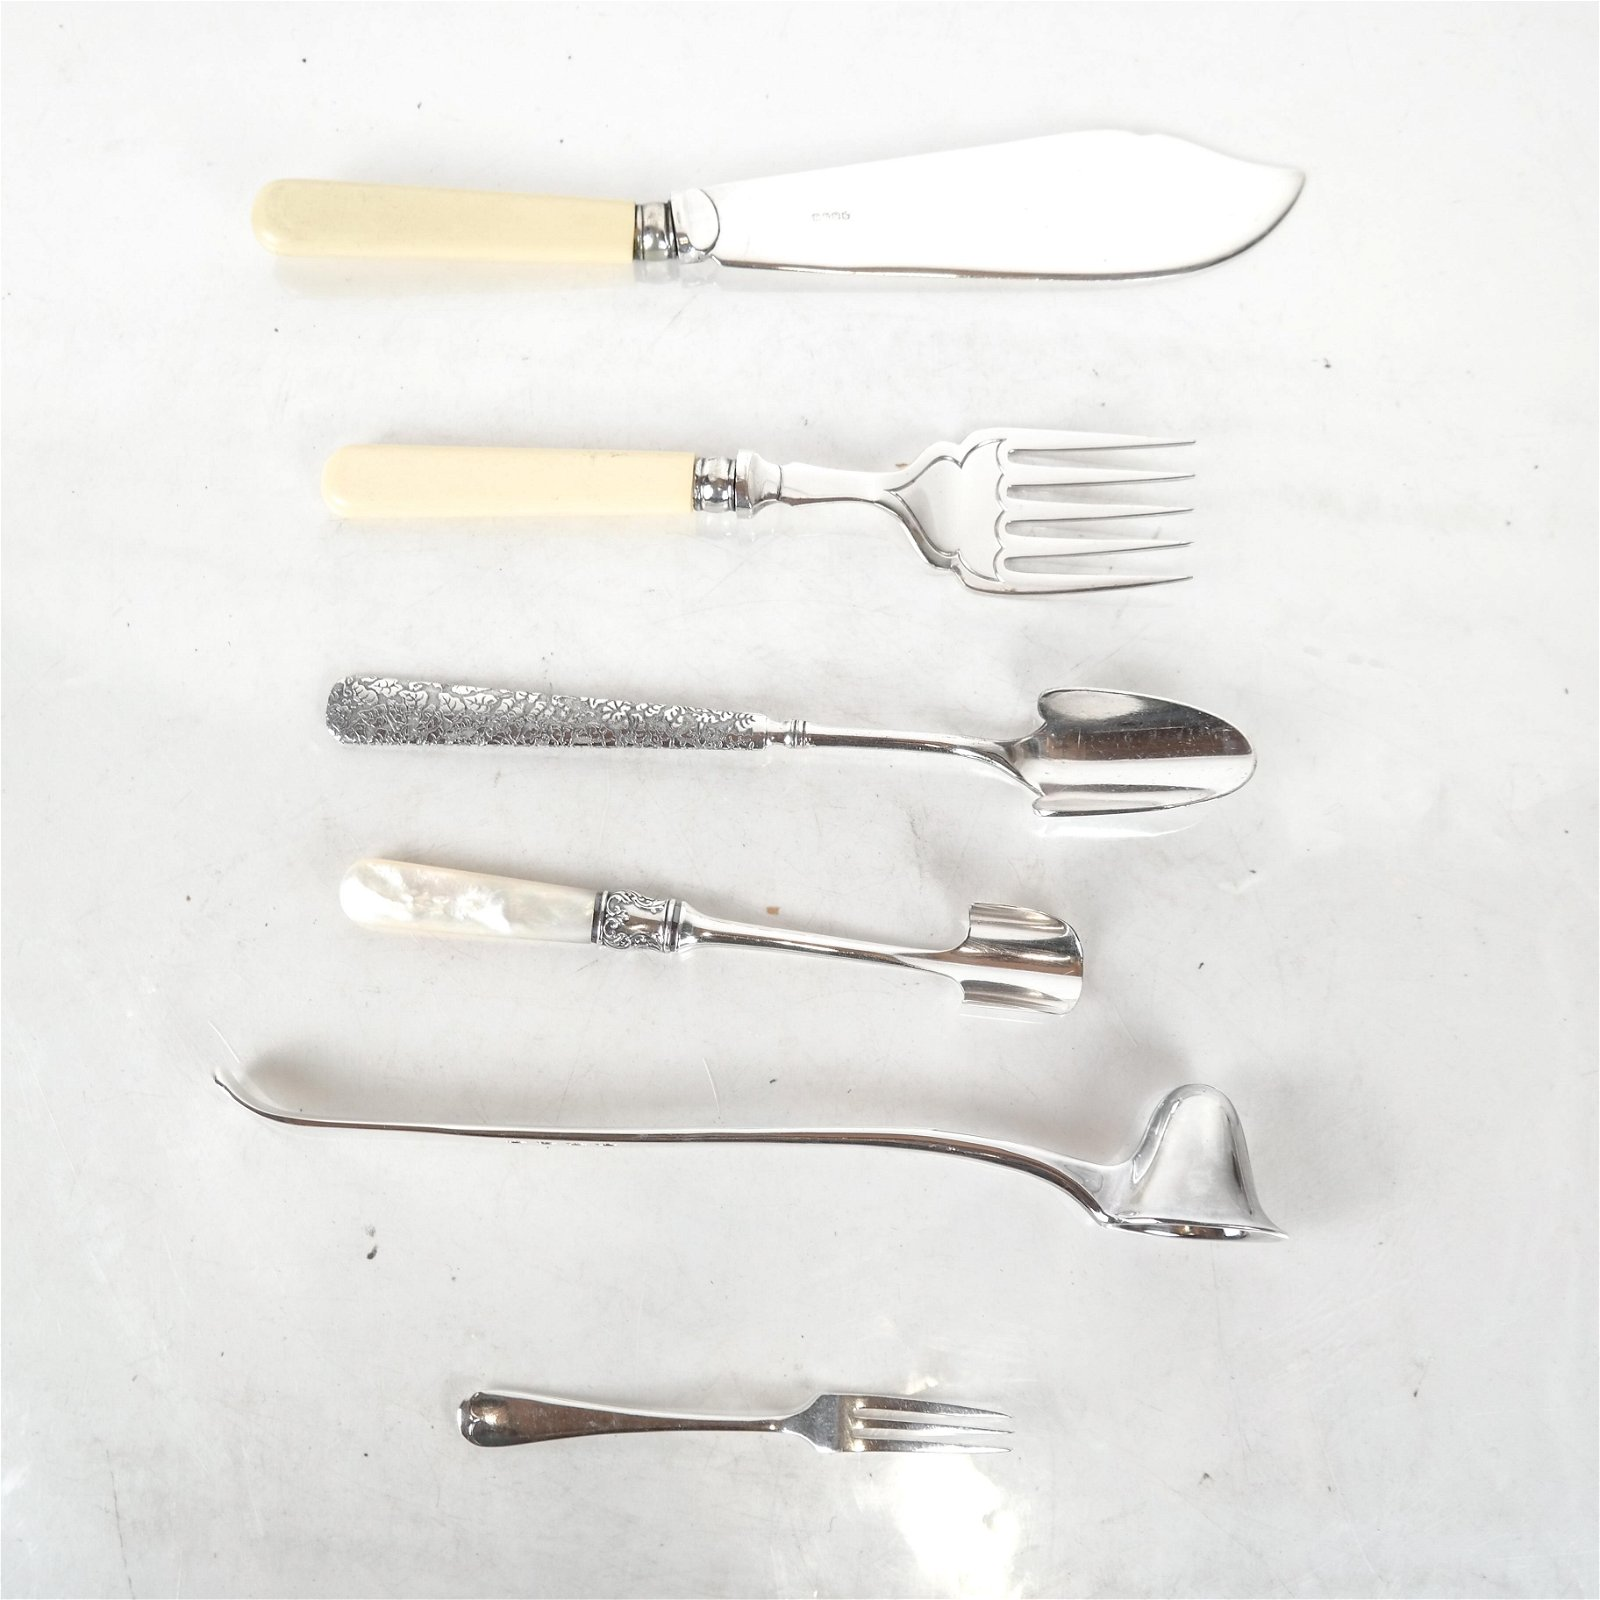 5 Silver Plate Service Items, Other